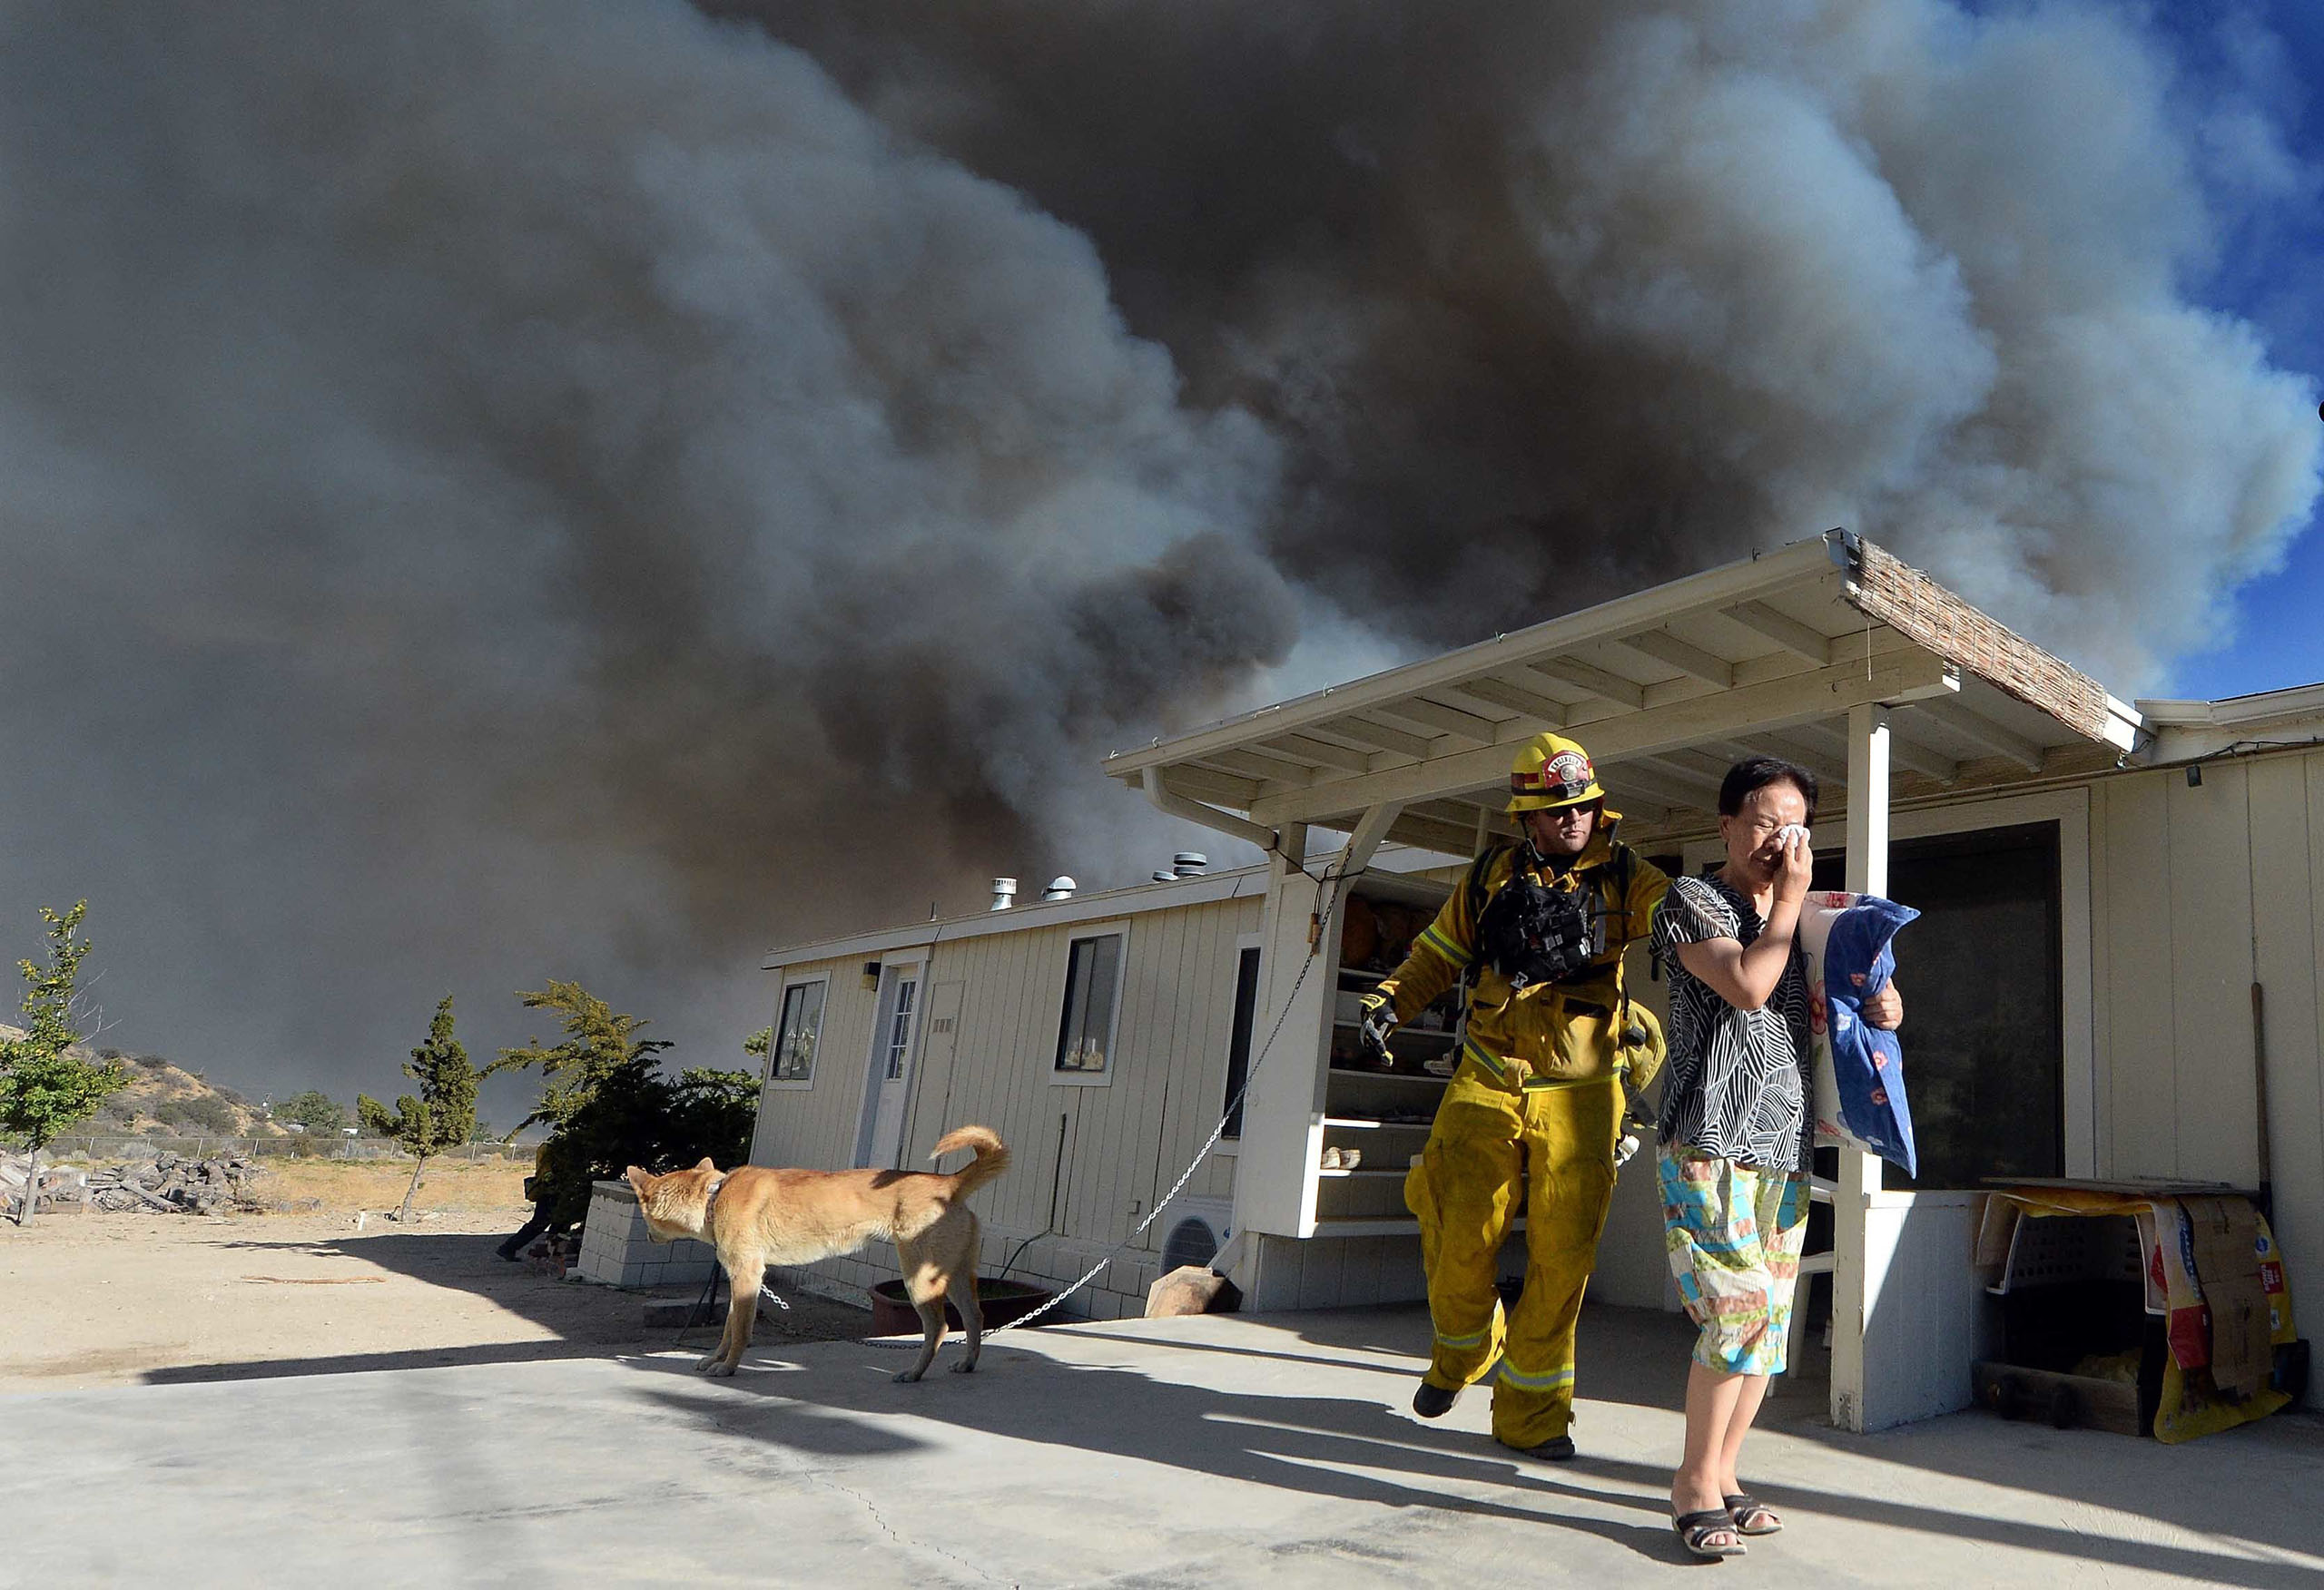 San Bernardino firefighter, engineer and paramedic Jeremy Pendergraft helps evacuate a couple from their home as the wildfire off of Highway 138 quickly approaches in San Bernardino, Calif., Aug. 16, 2016.